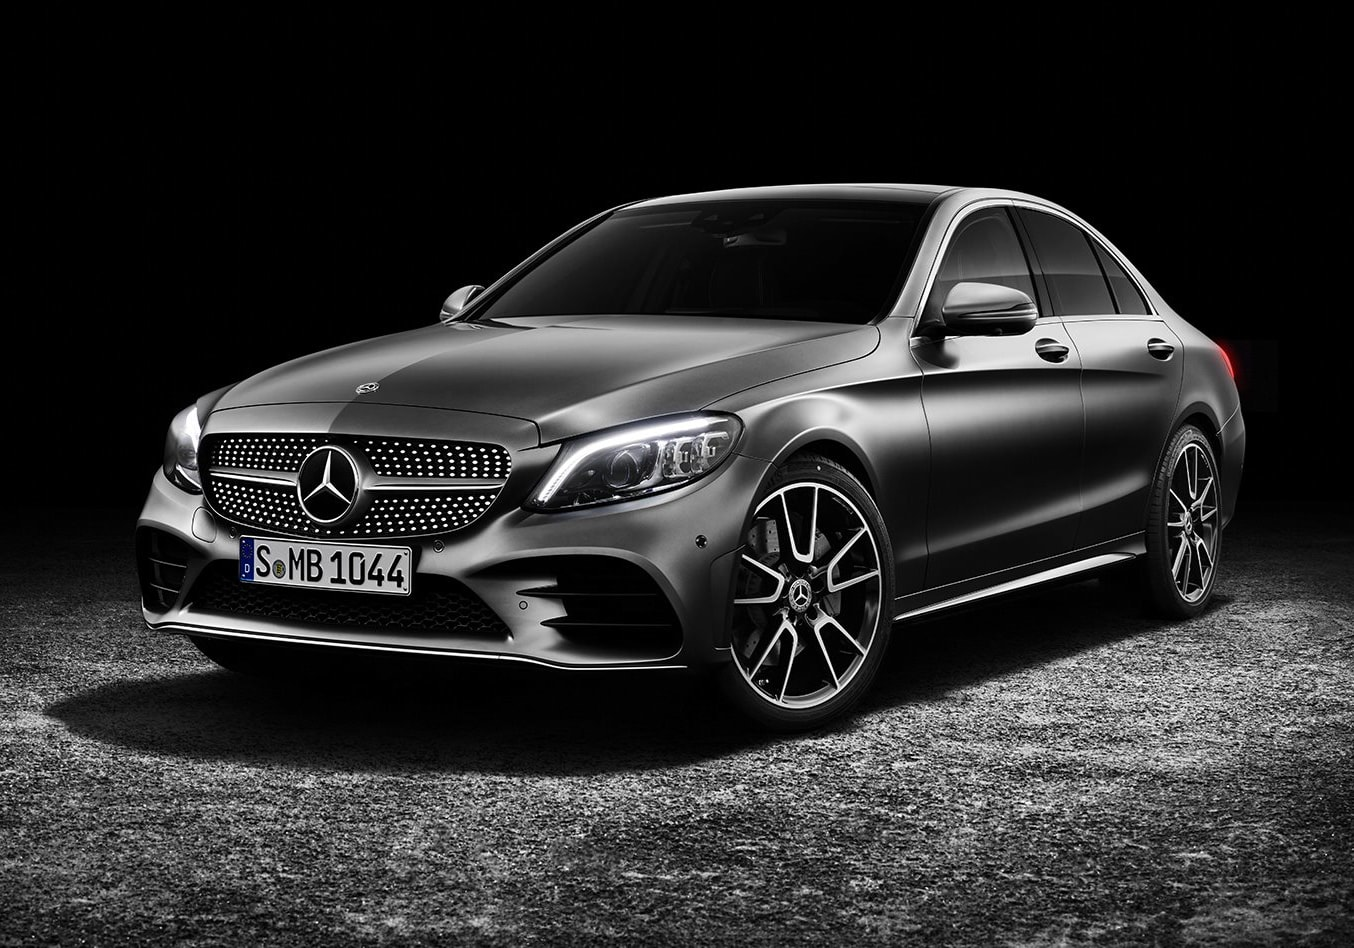 Facelifted 2018 Mercedes-Benz C-Class revealed